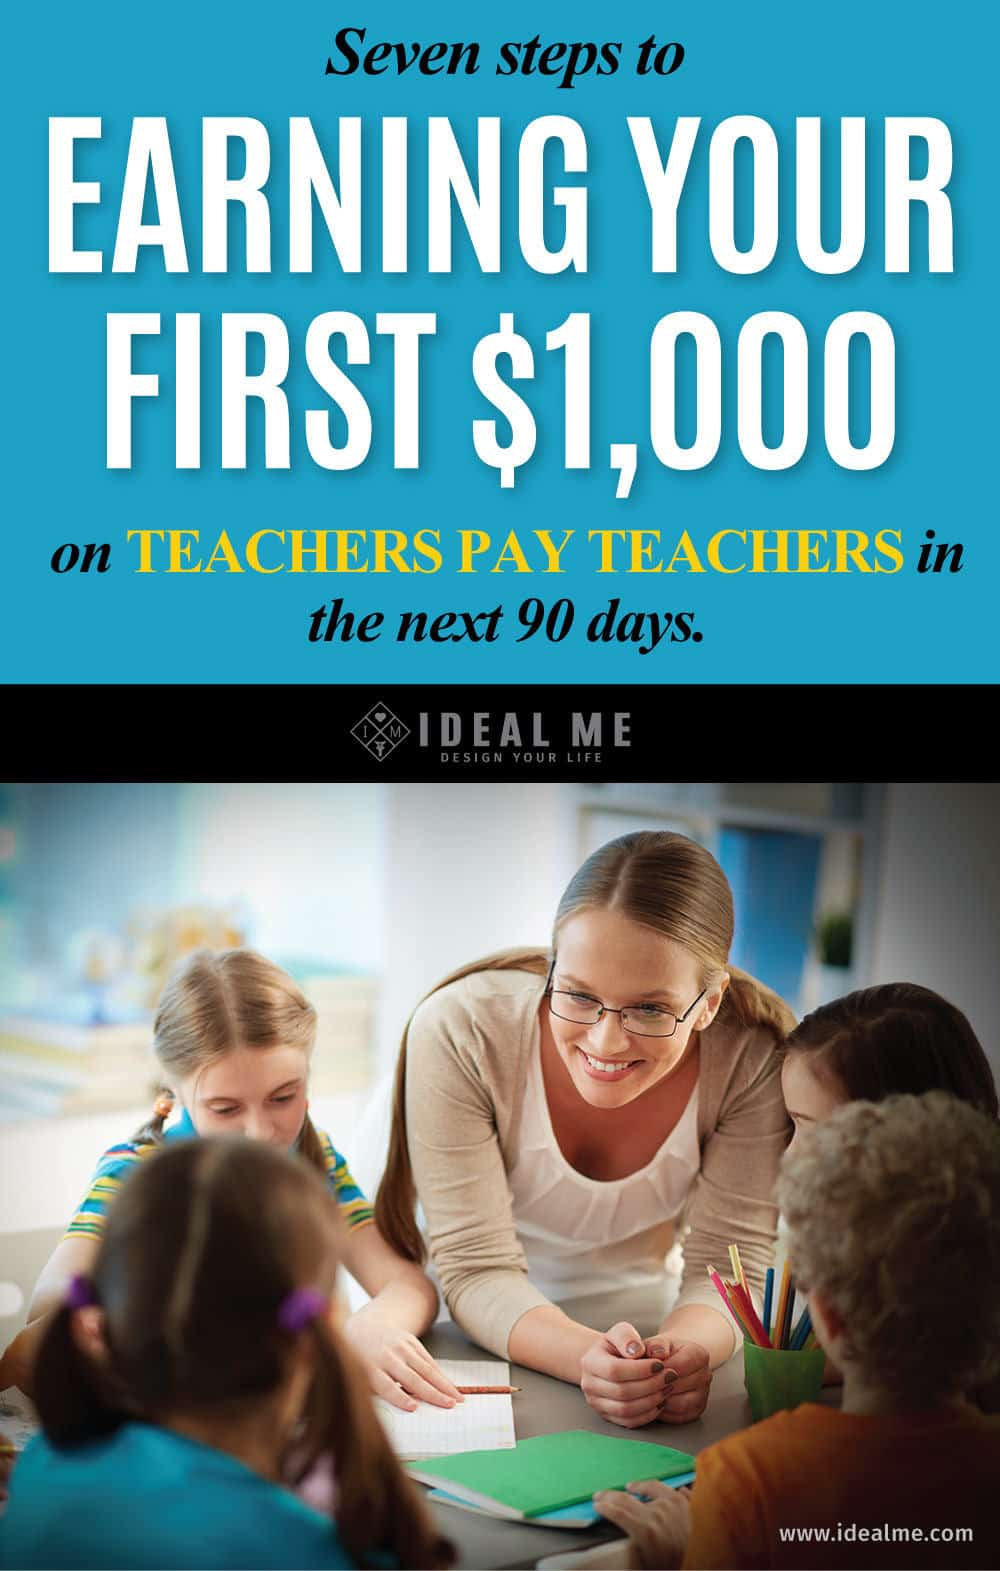 7 steps to earning your first 1000 on teachers pay